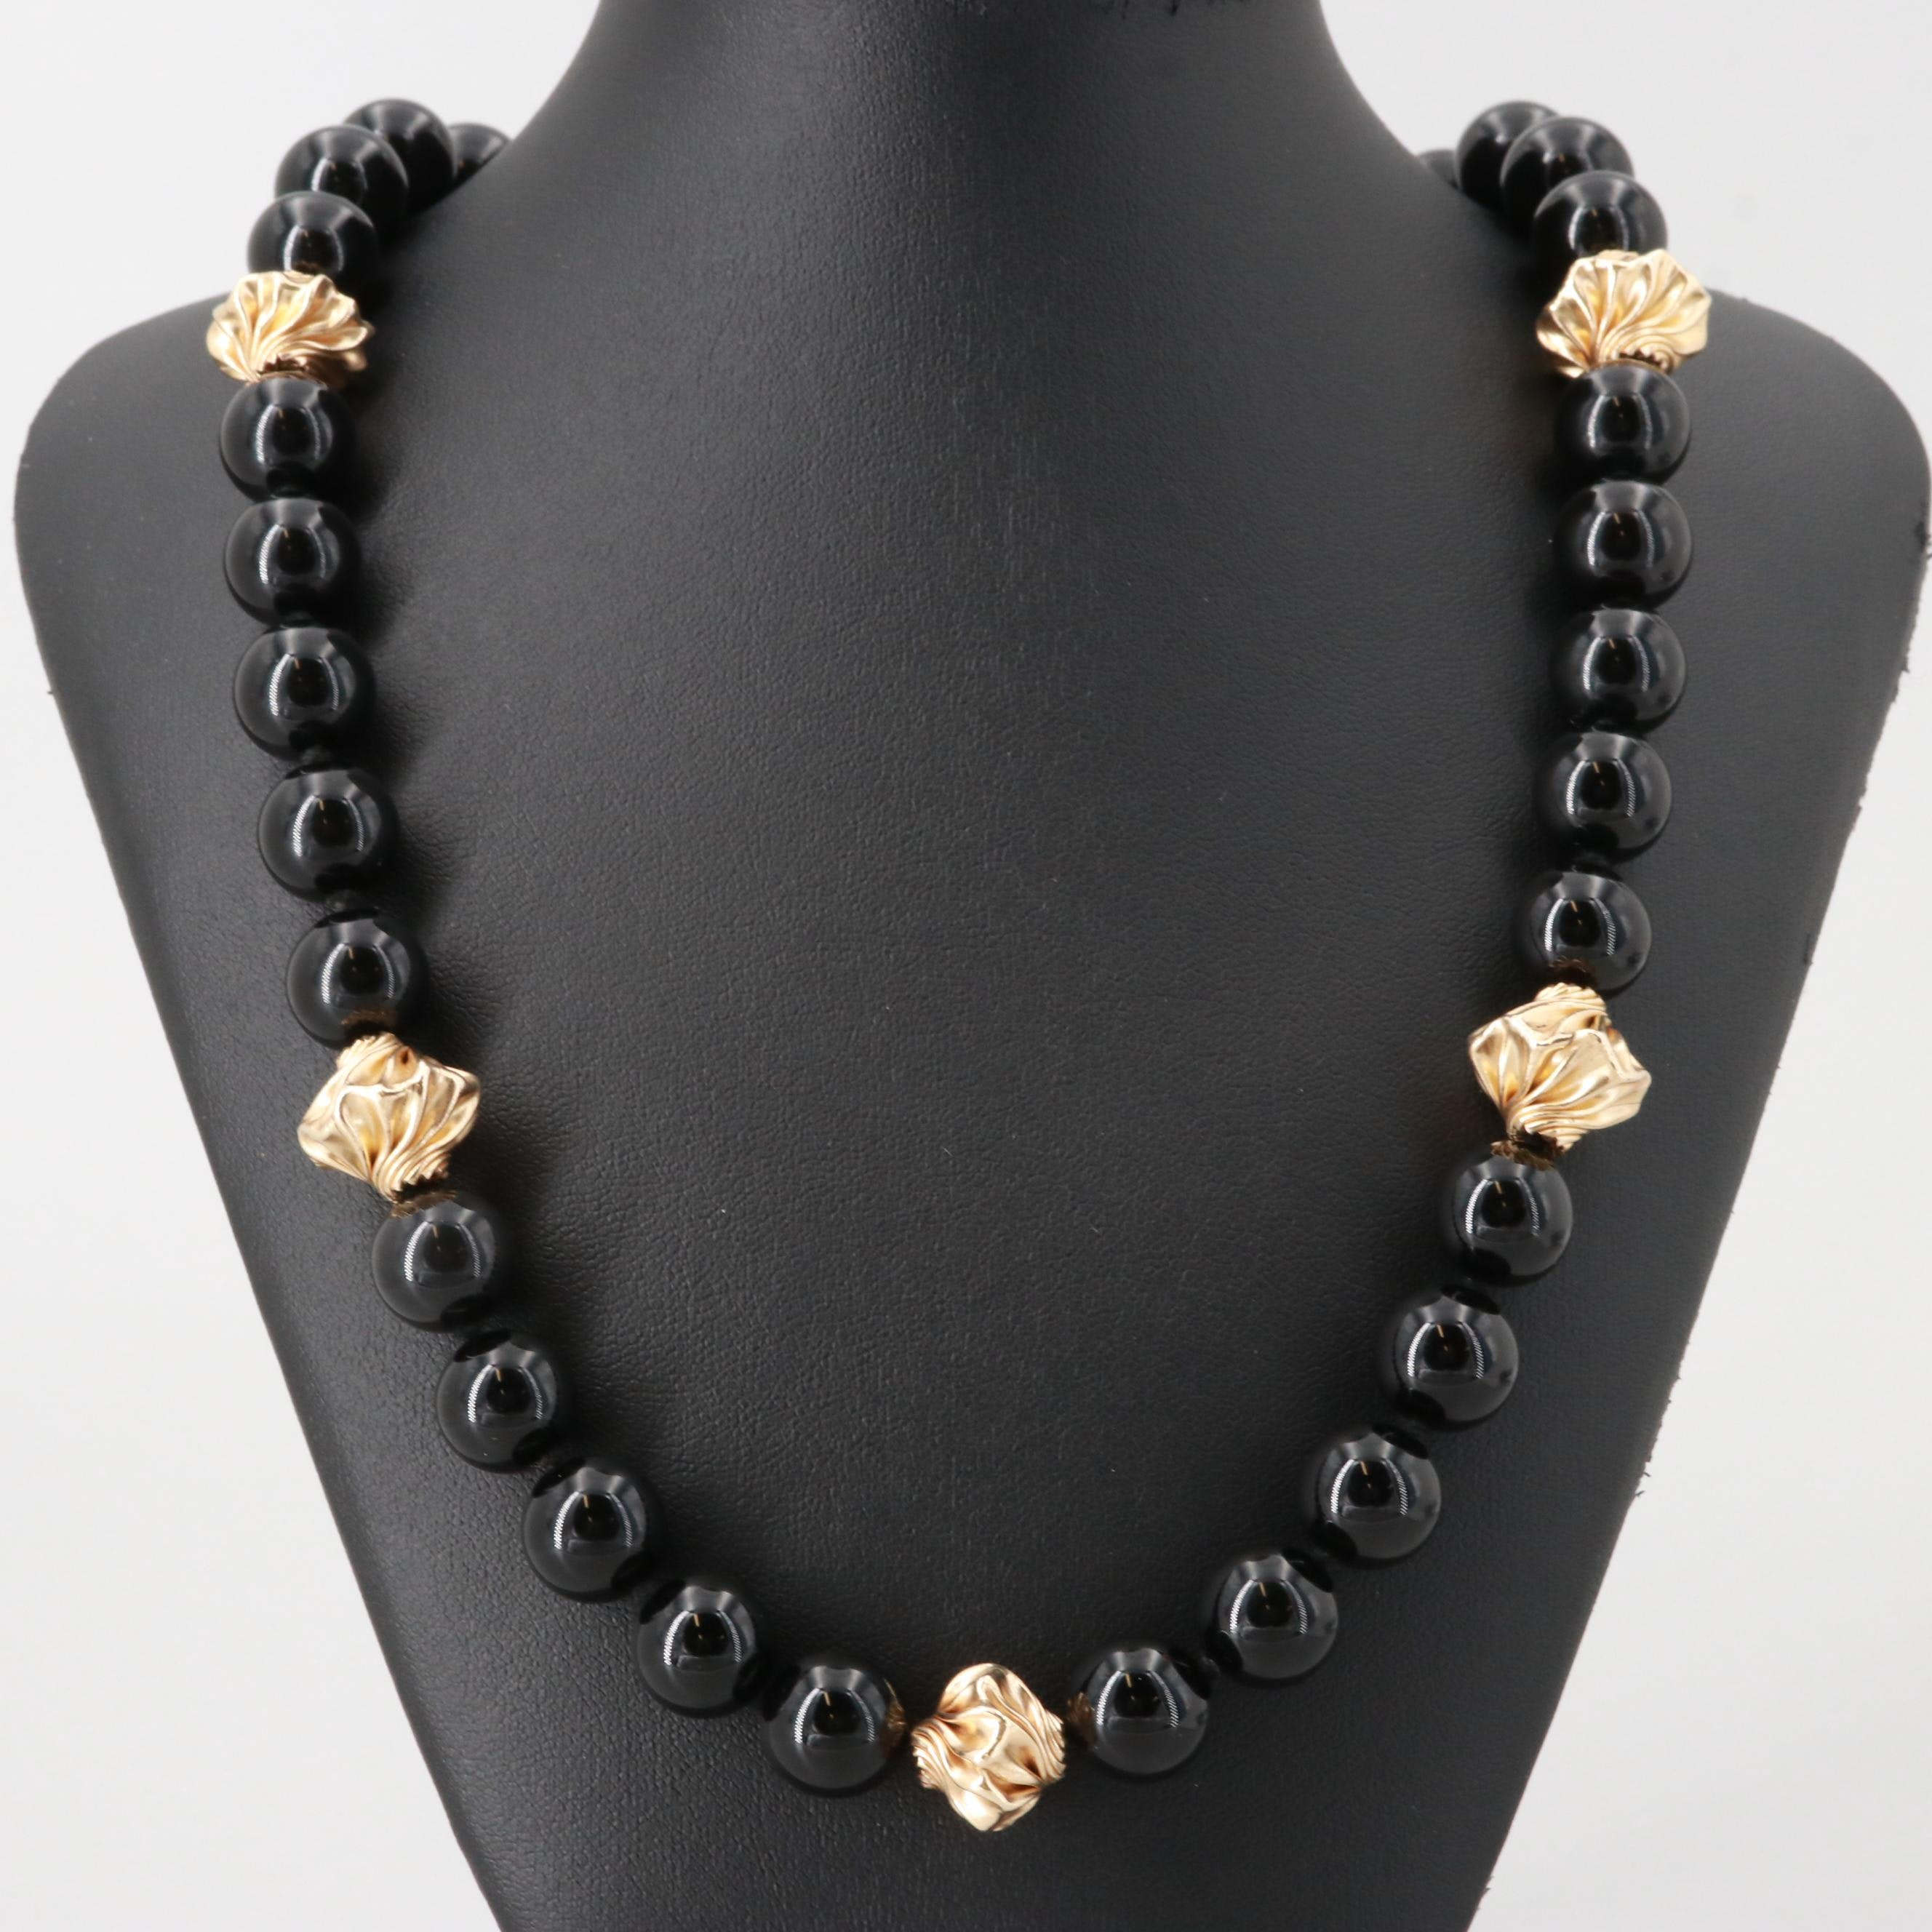 10K and 14K Yellow Gold Black Onyx Beaded Necklace